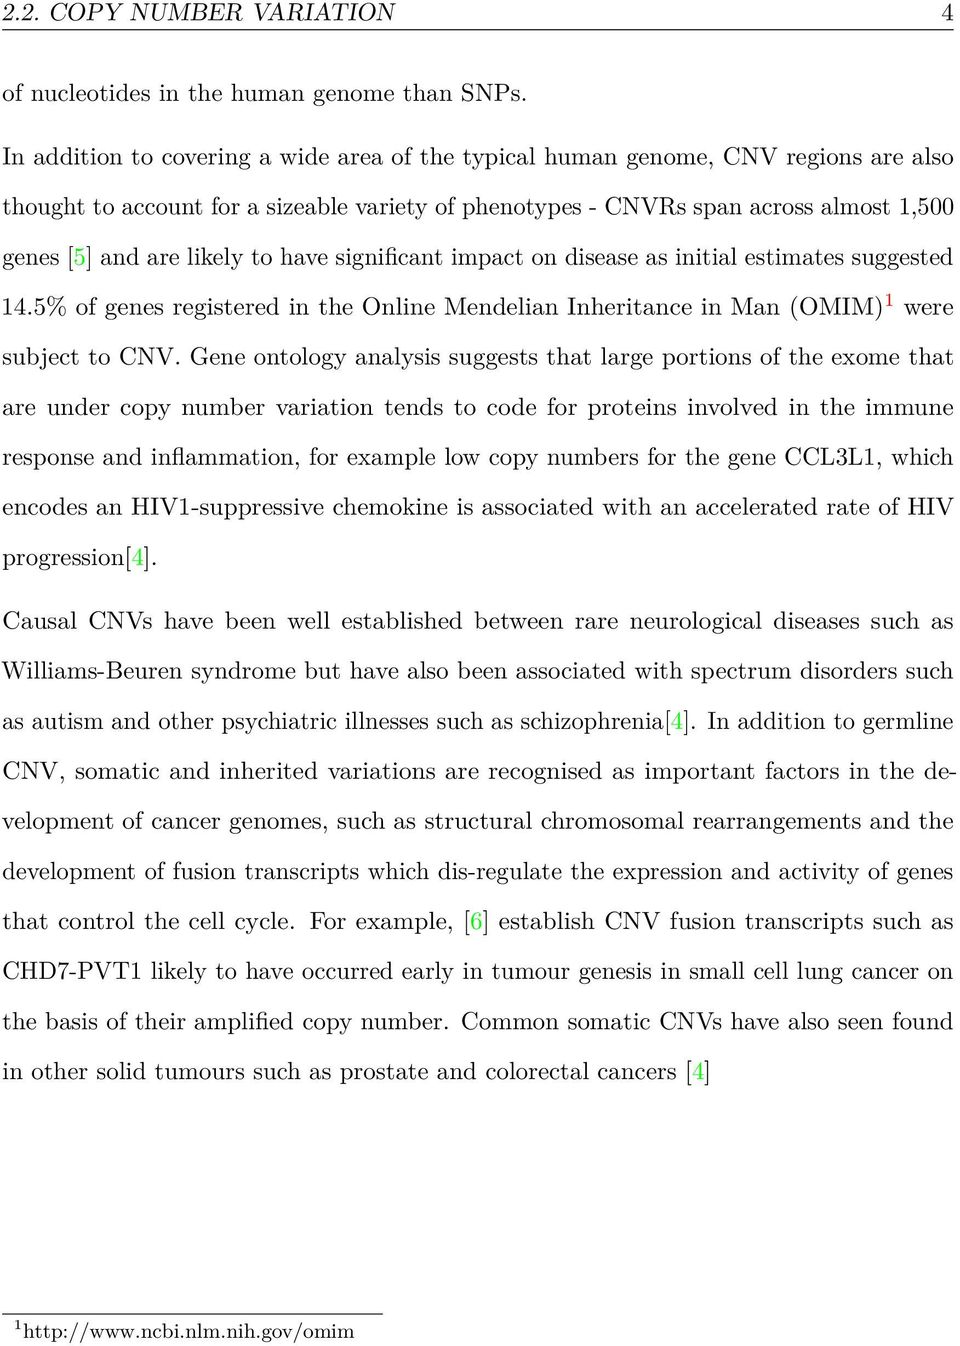 to have significant impact on disease as initial estimates suggested 14.5% of genes registered in the Online Mendelian Inheritance in Man (OMIM) 1 were subject to CNV.